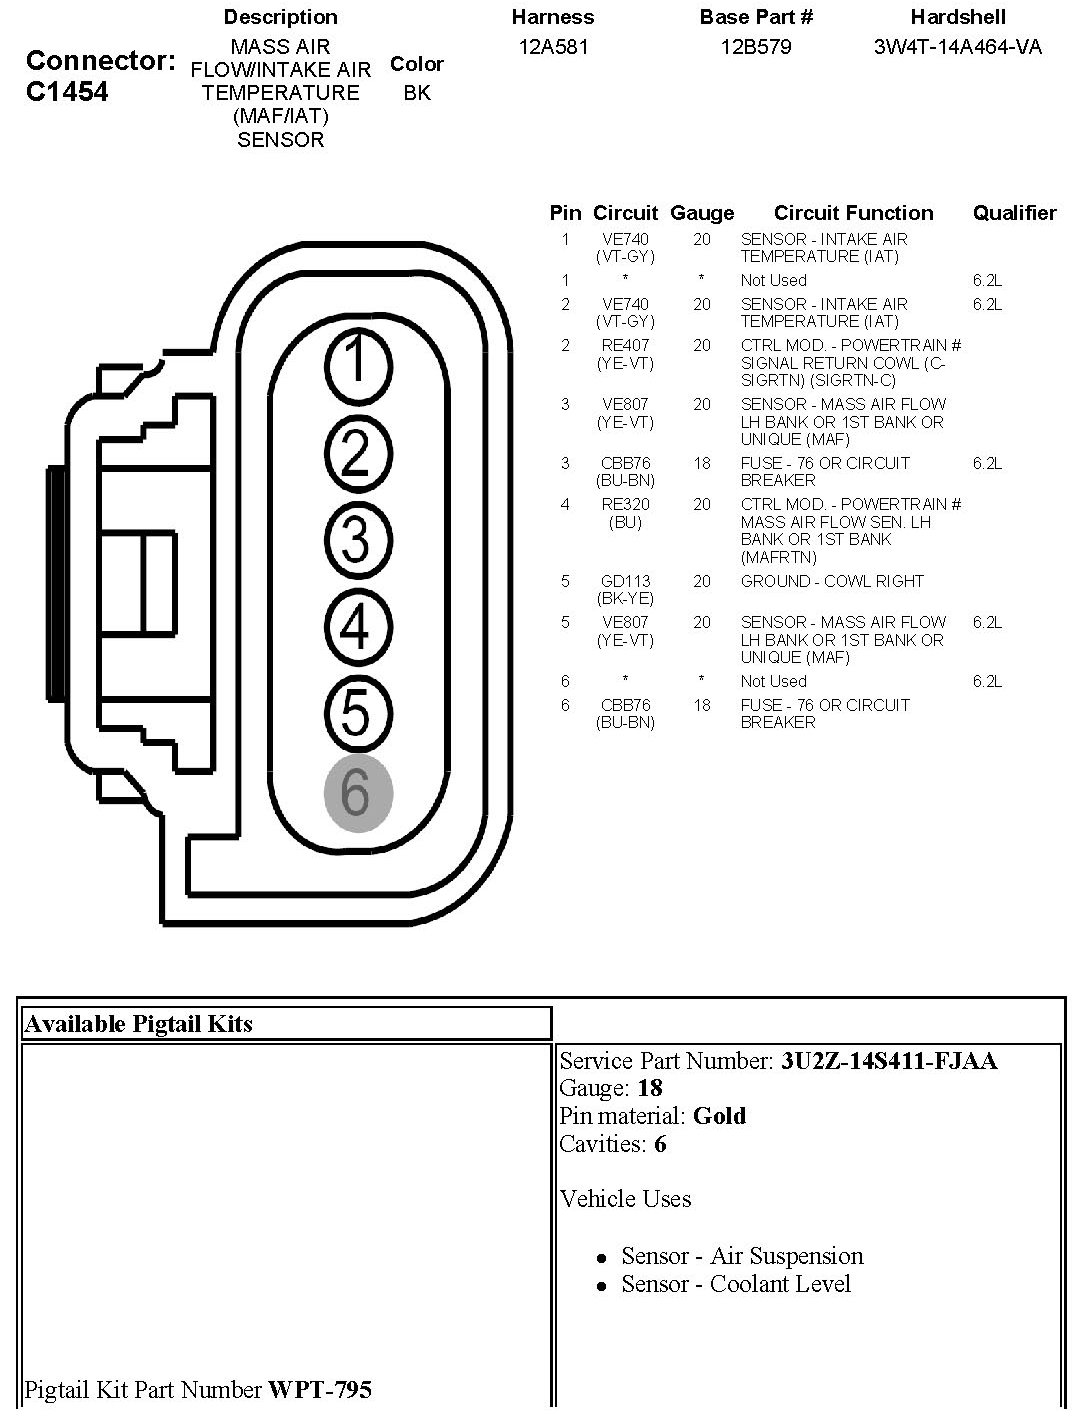 Ford f 150 iat wiring diagram wire center on a 2010 f150 5 4l if a performance chip is attached to pin 1 rh justanswer com 1989 ford f 150 wiring diagram 2013 ford f 150 wiring diagram fandeluxe